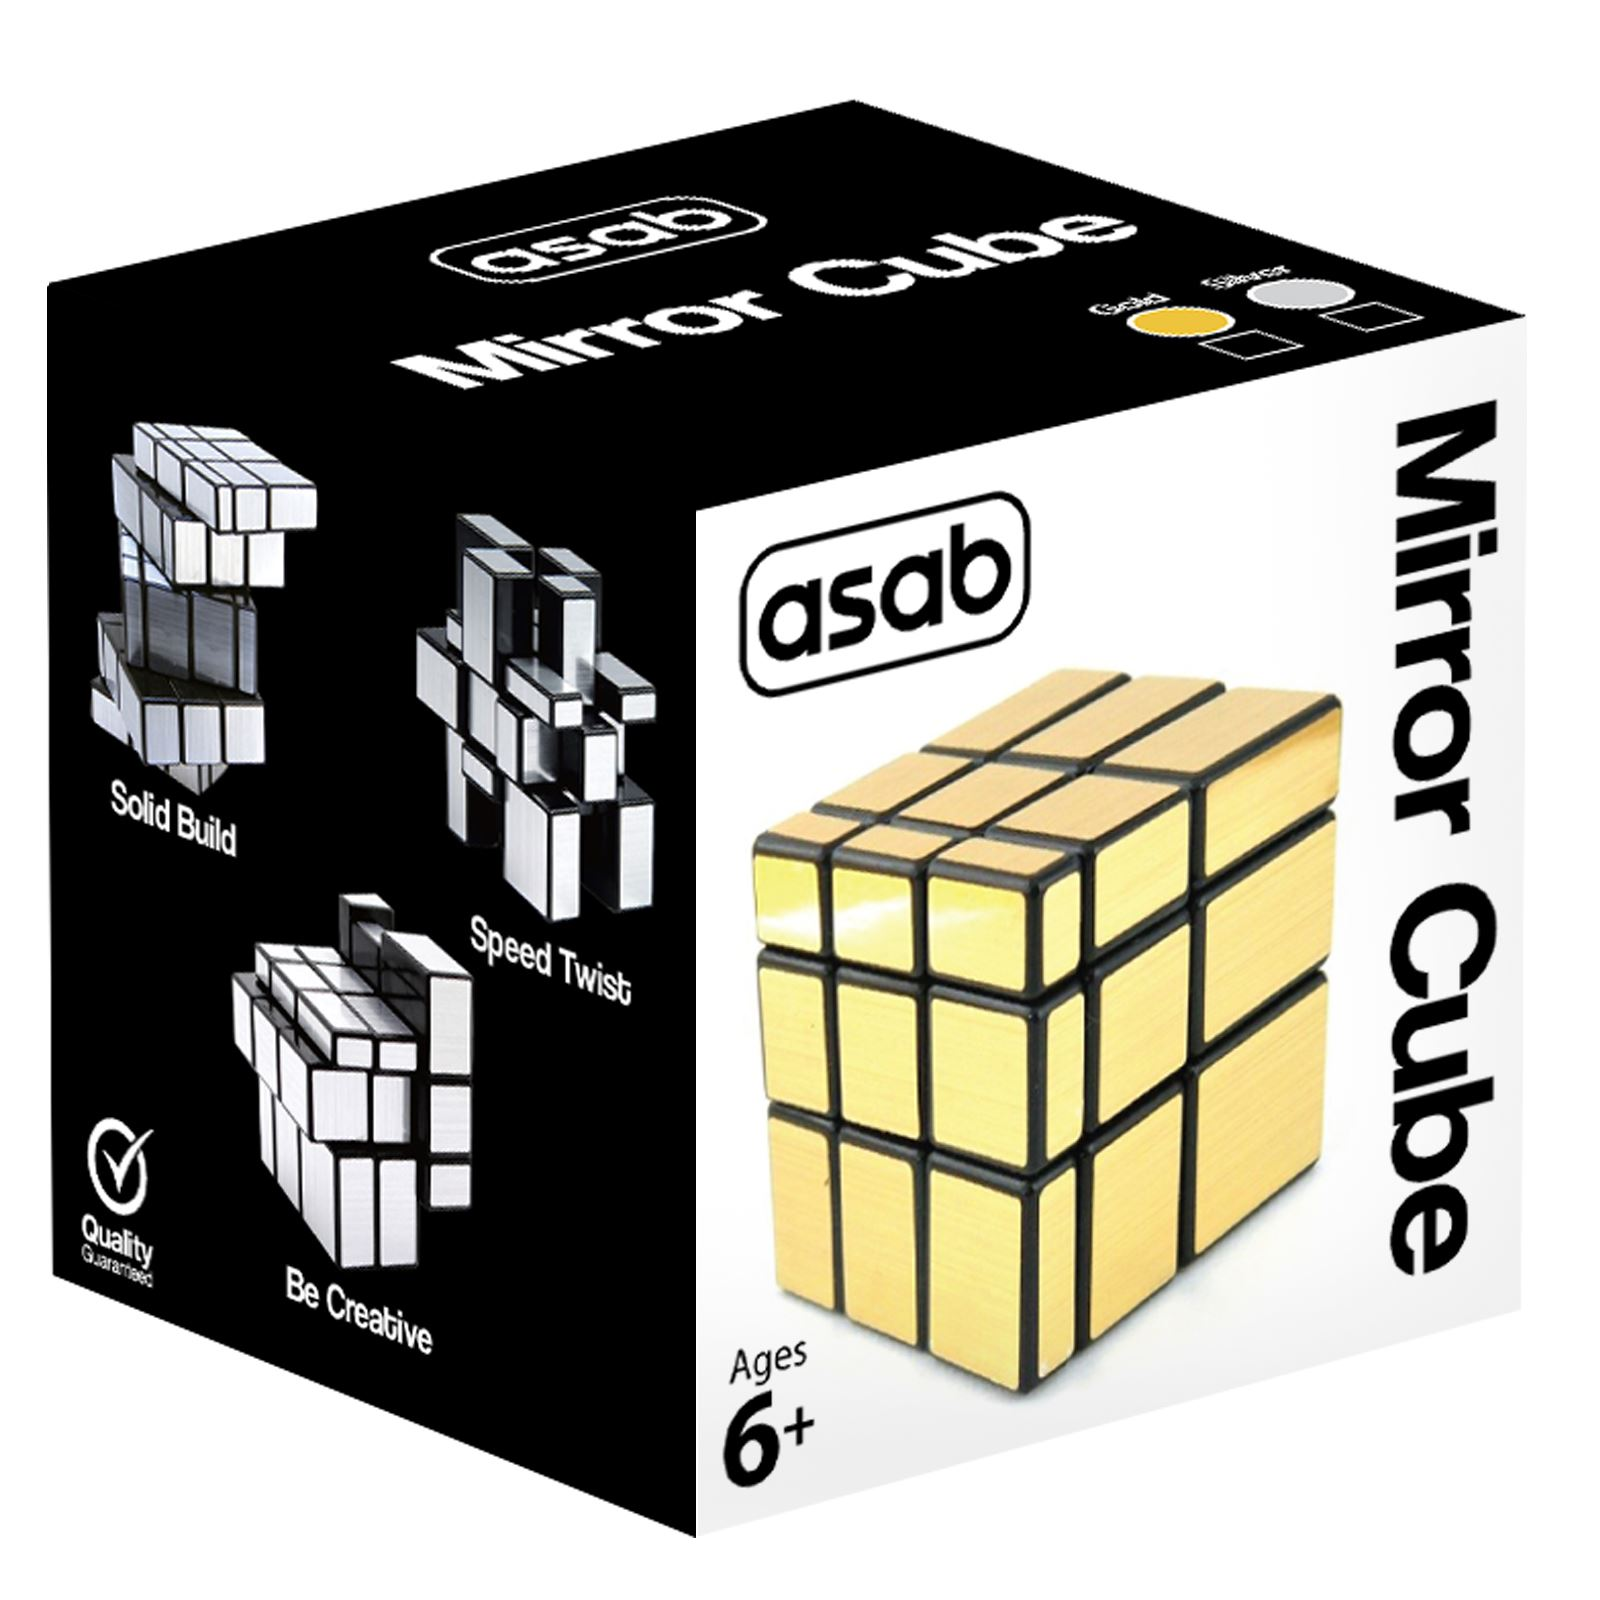 3x3-Miroir-Cube-Puzzle-Mind-Game-Brain-Teasers-Magic-scies-sauteuses-enfants-jouet-adulte-cadeau miniature 6